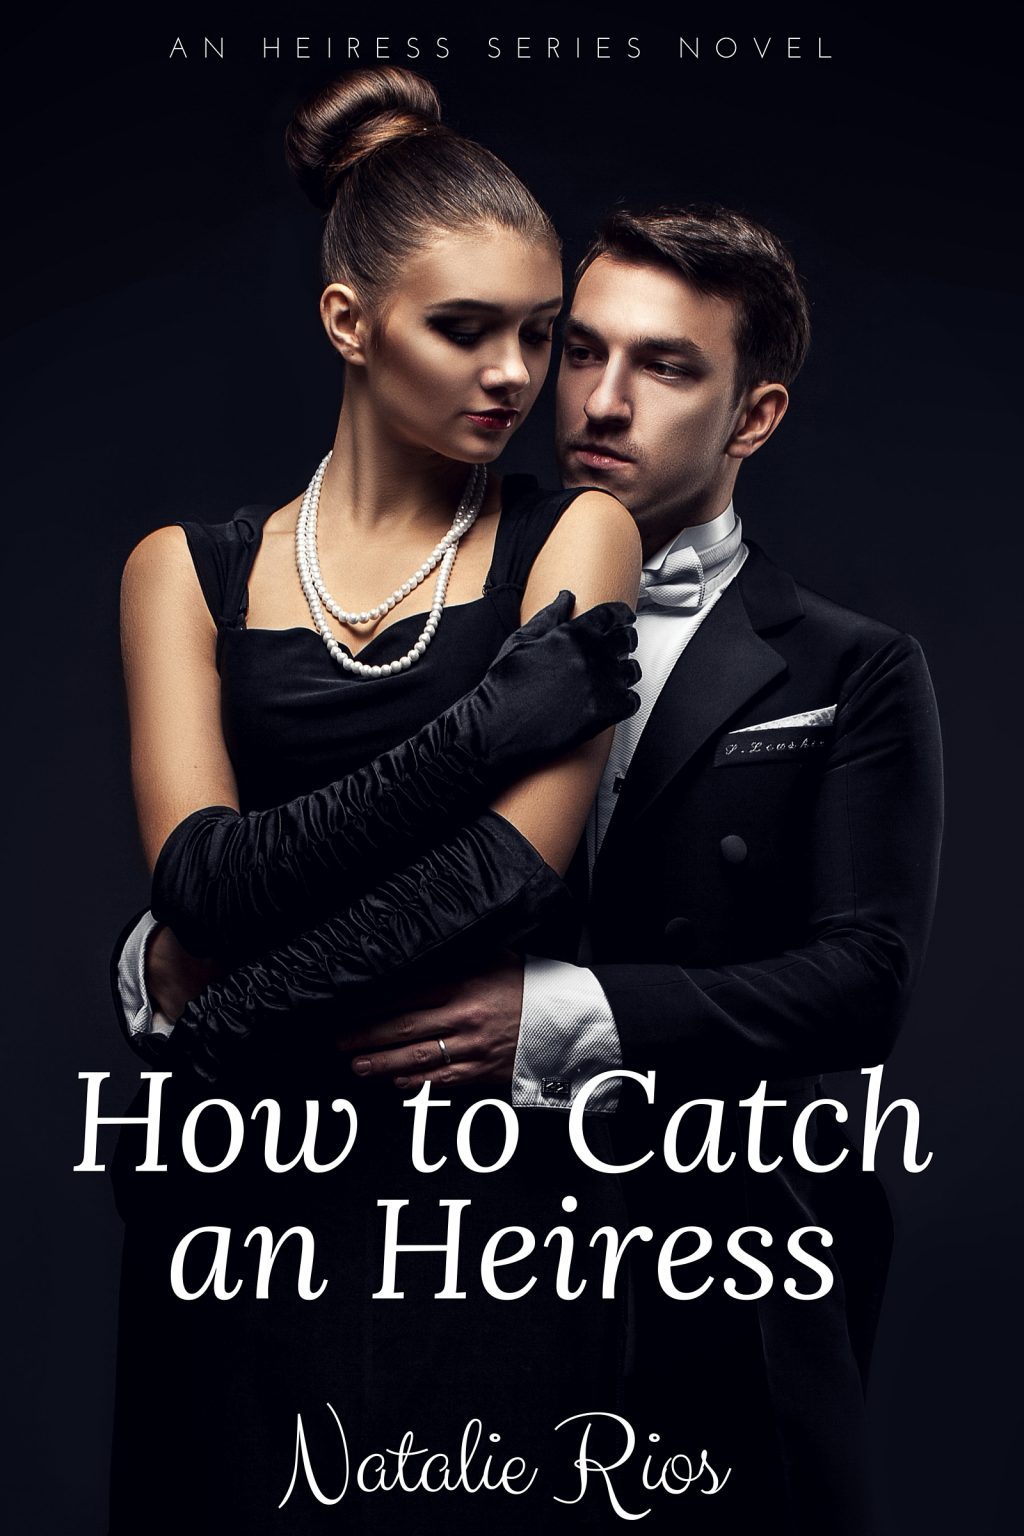 How to Catch an Heiress (Heiress Series #1) by Natalie Rios